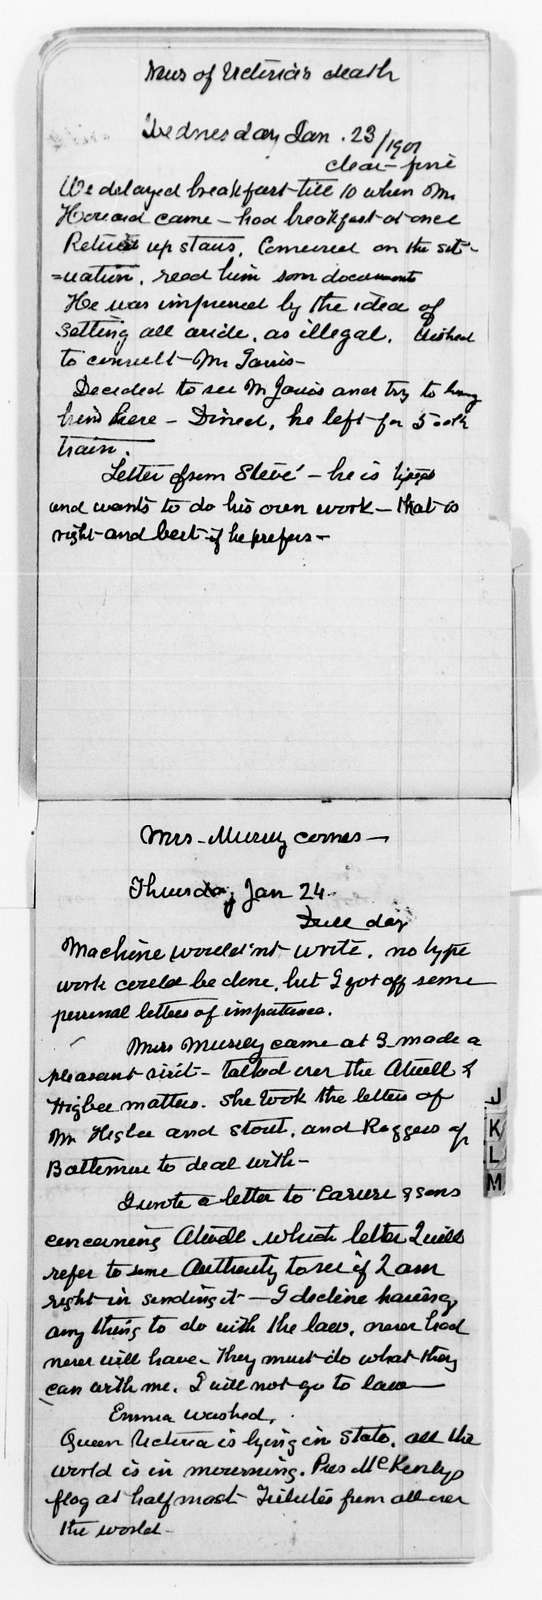 Clara Barton Papers: Diaries and Journals: 1899, Nov. 11-24; 1900, Dec. 12-1901, Mar. 31